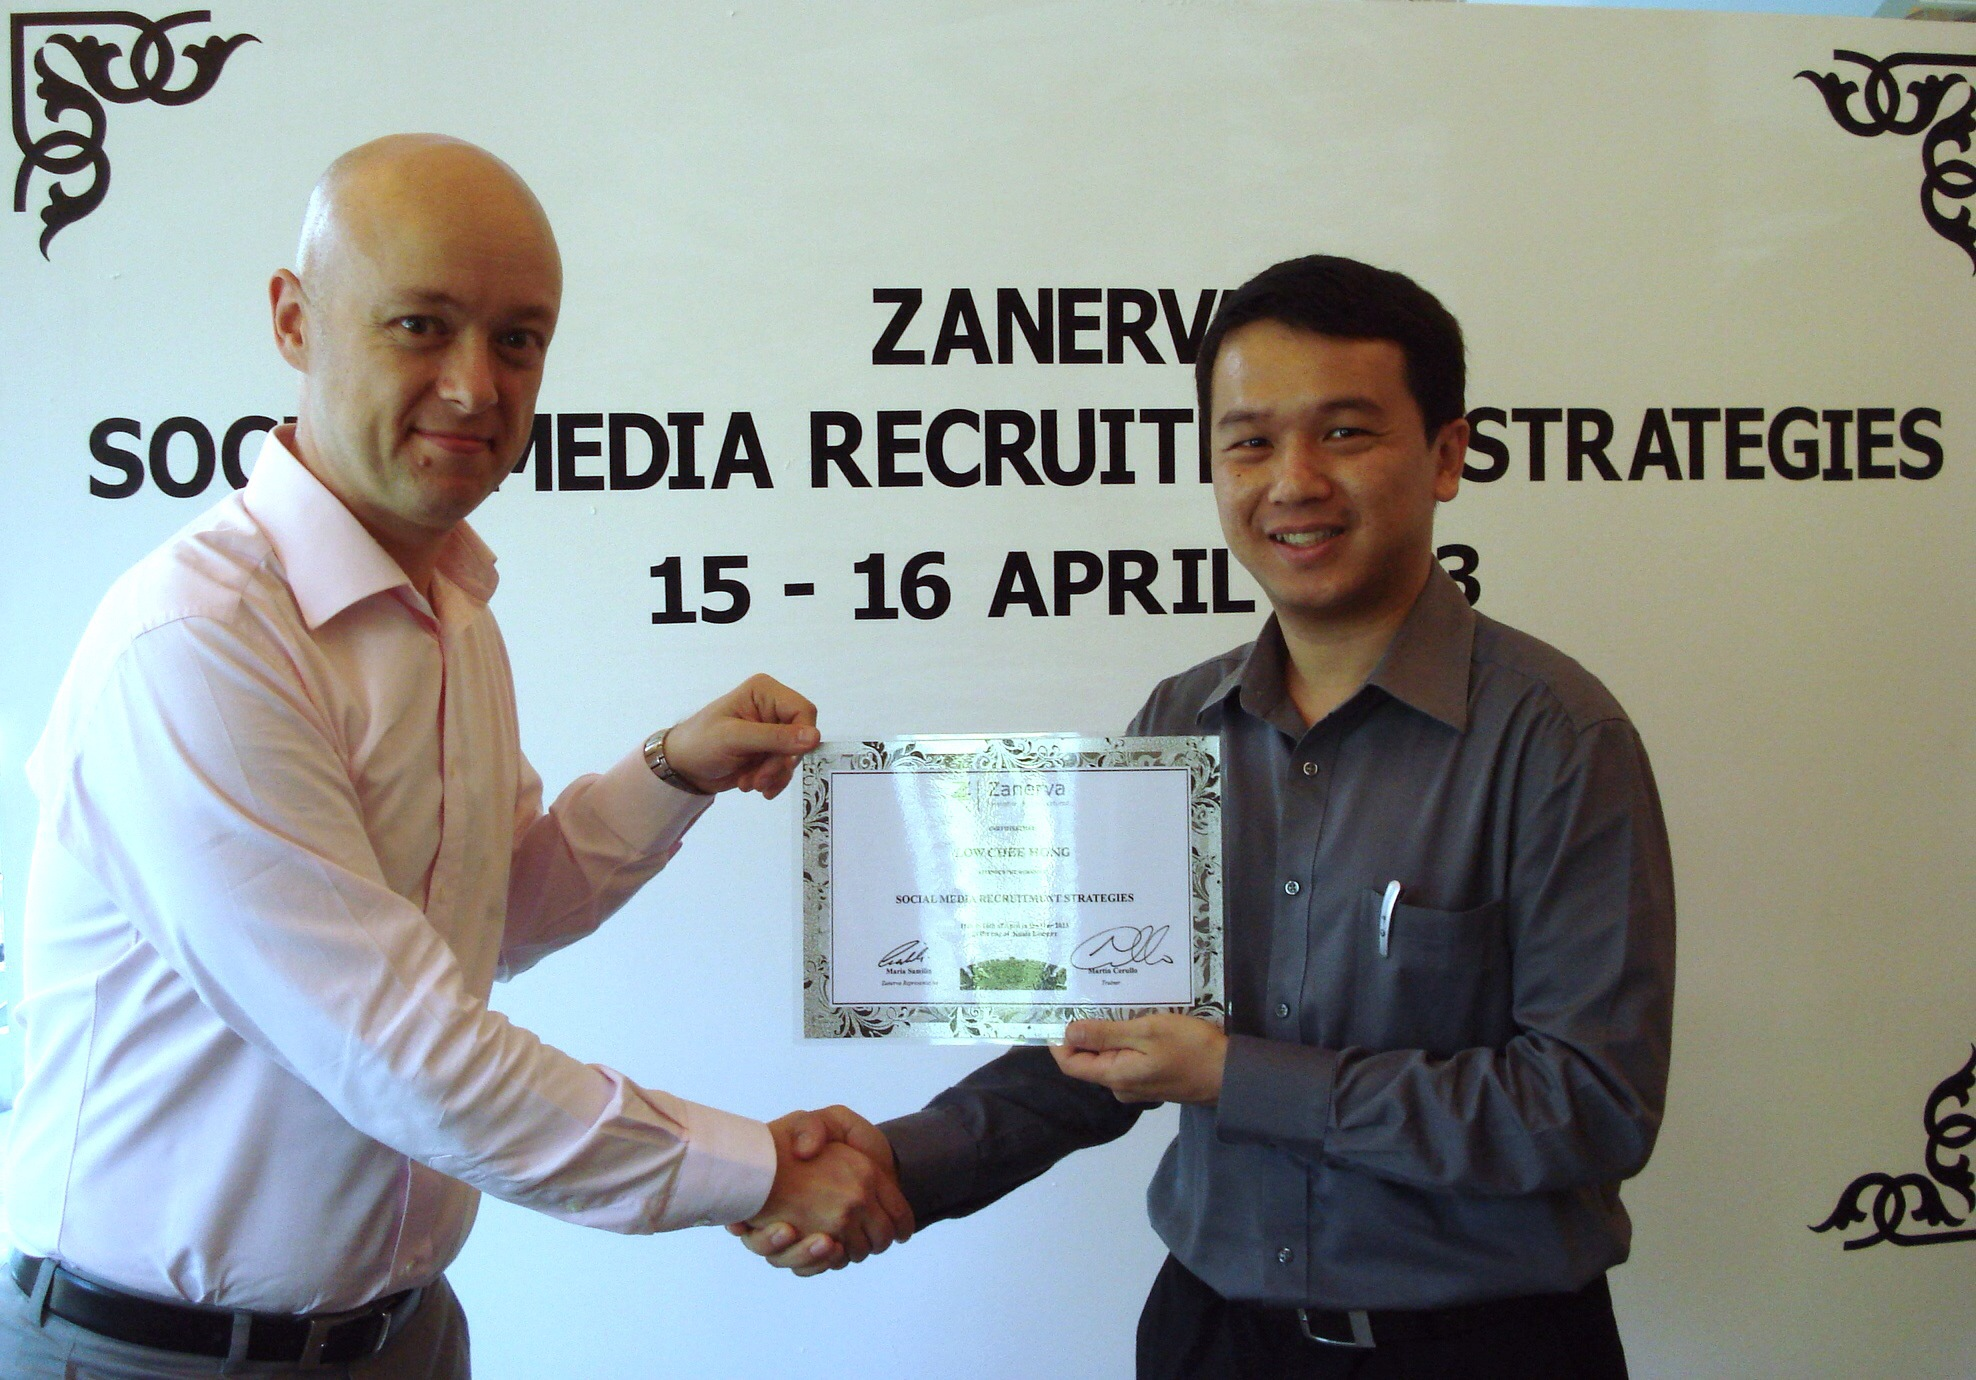 Low Chee Hong, Group Human Resource Executive at BMW Malaysia  receiving his certificate of participation for attending the Social Media Recruitment Strategies Workshop in Kuala Lumpur